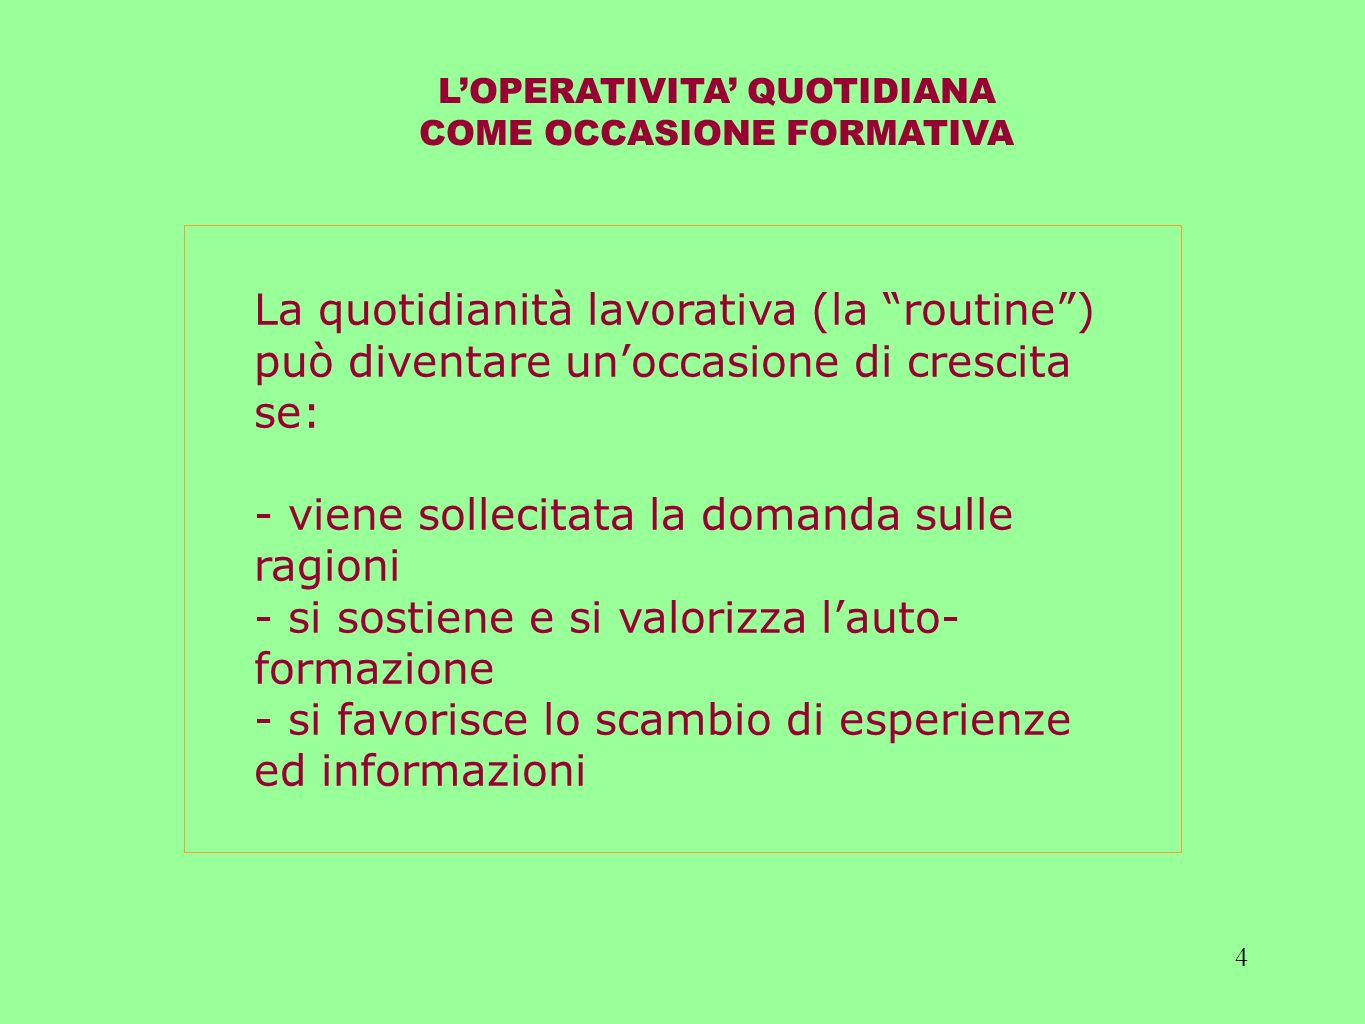 L'OPERATIVITA' QUOTIDIANA COME OCCASIONE FORMATIVA